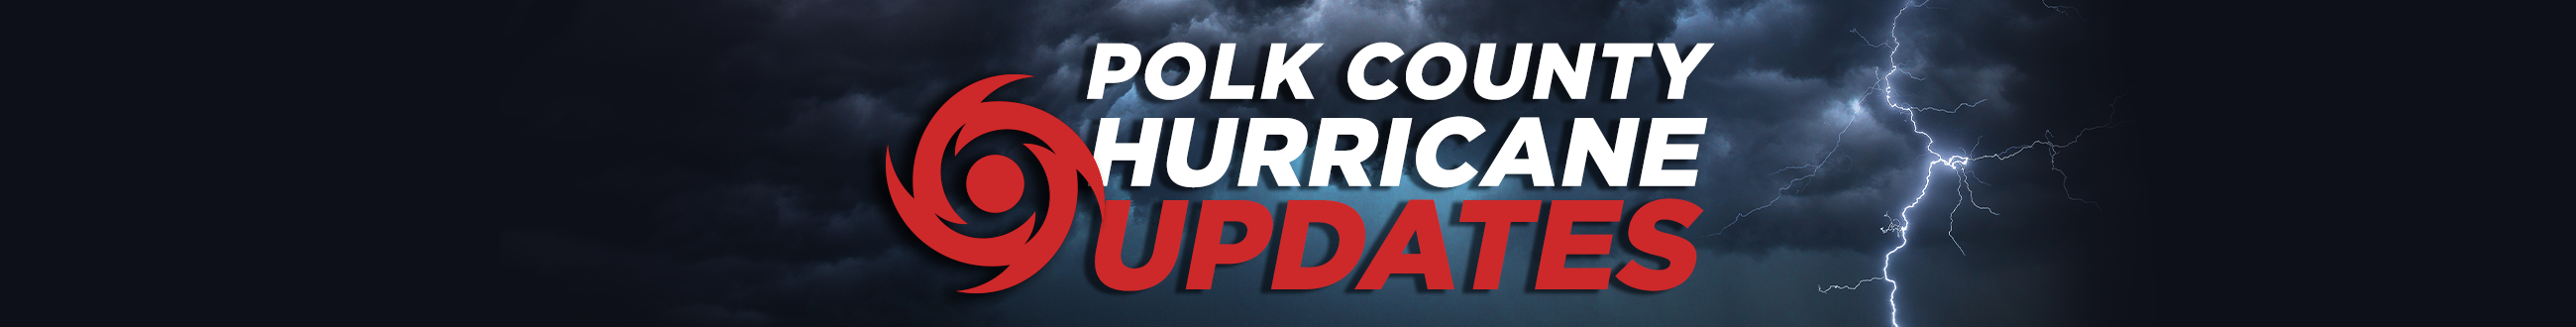 , COL Hurricane Dorian Update Tuesday, September 3